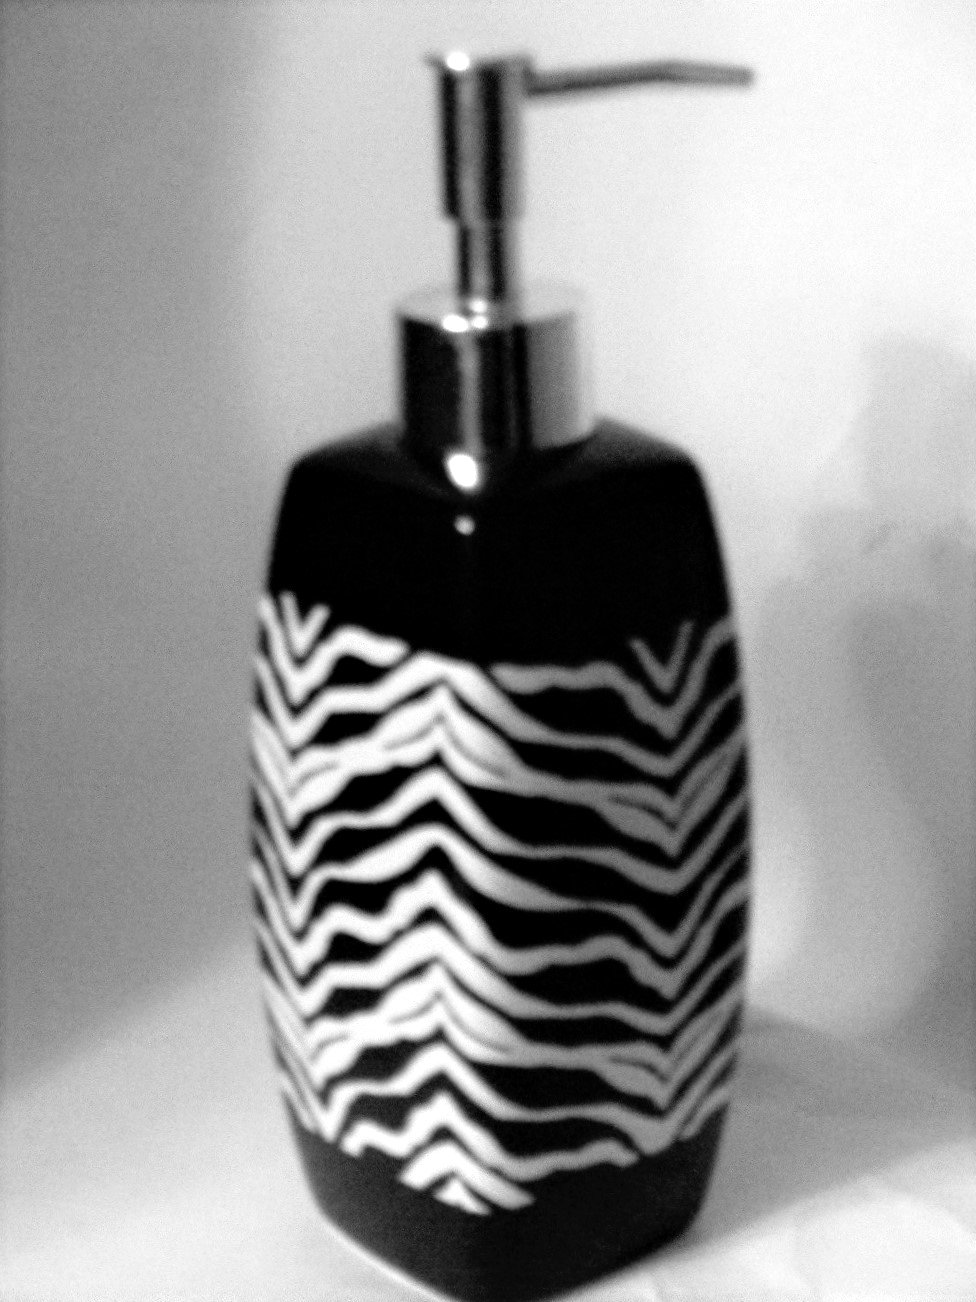 Zebra Stripe Lotion Pump Soap Dispenser Popular Bath